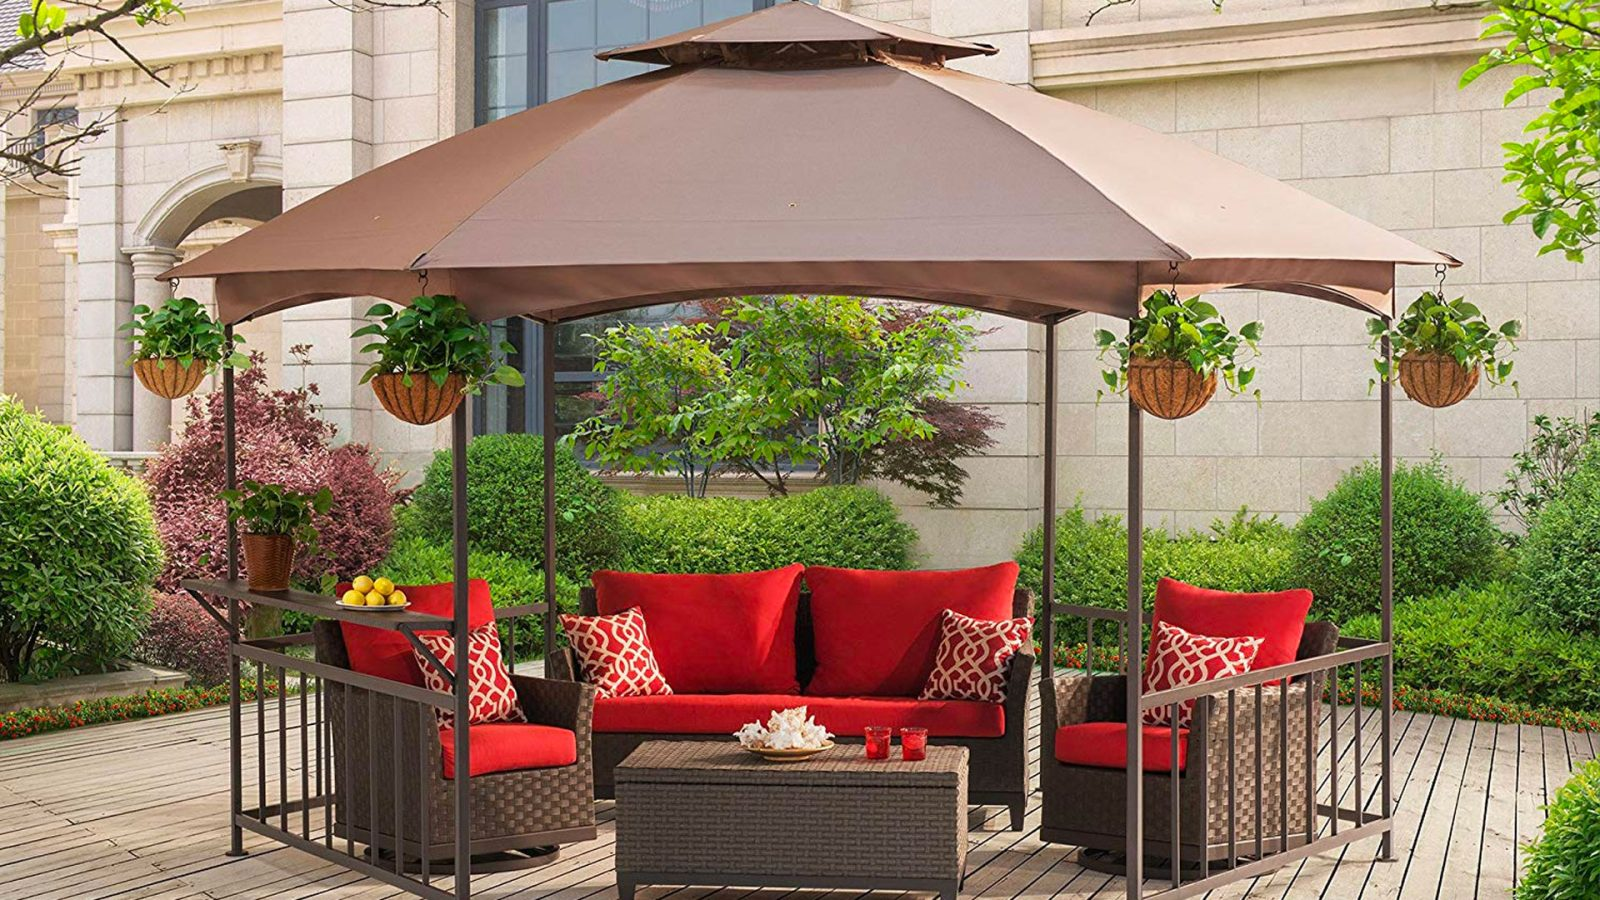 Enjoy being outdoors with this gazebo at $350 (Reg. $500), today only